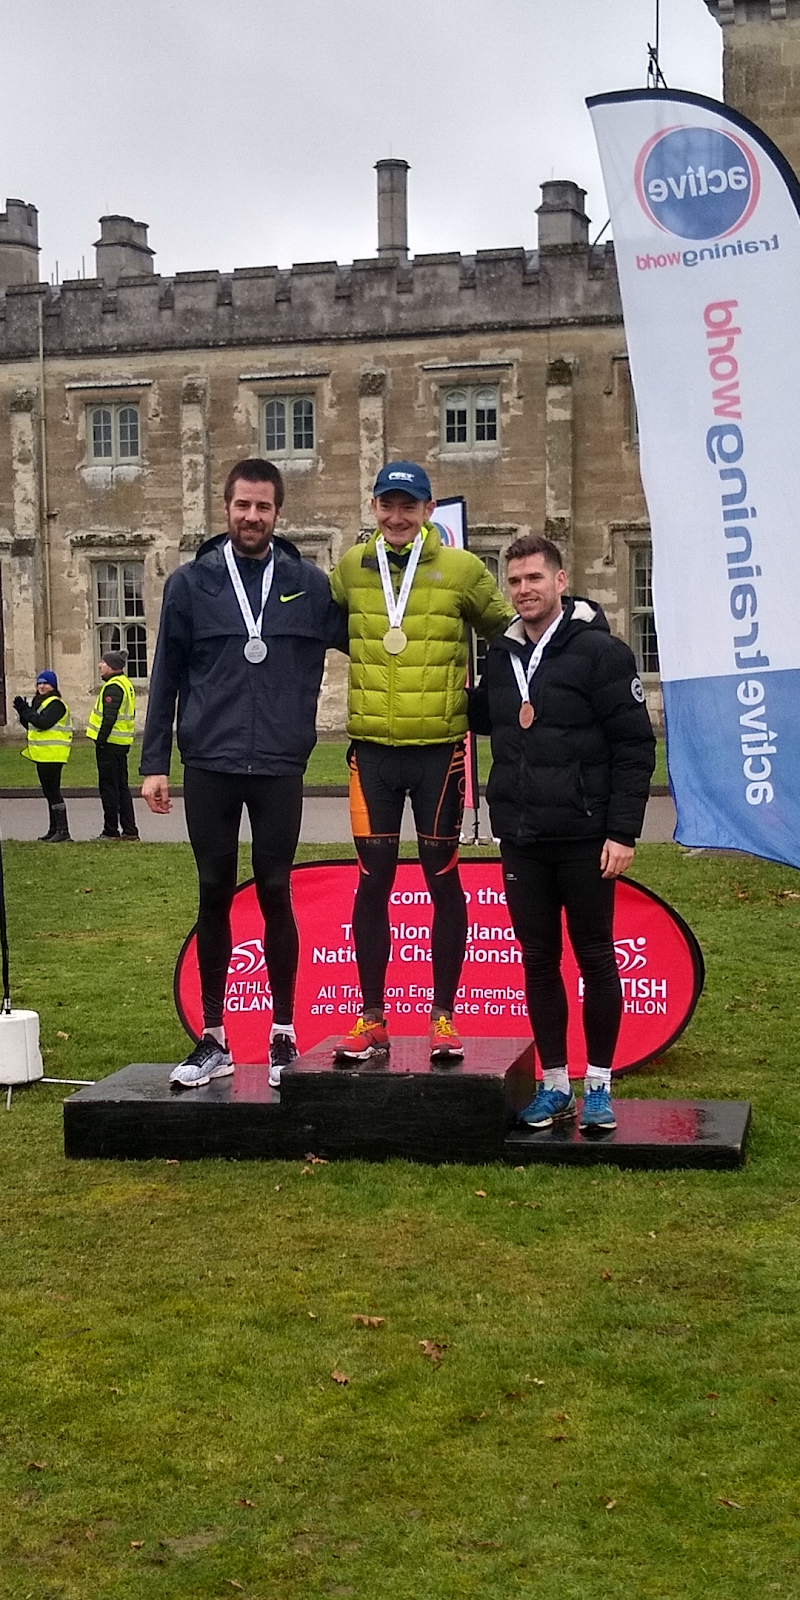 podium finish duathlon race UK Sundried